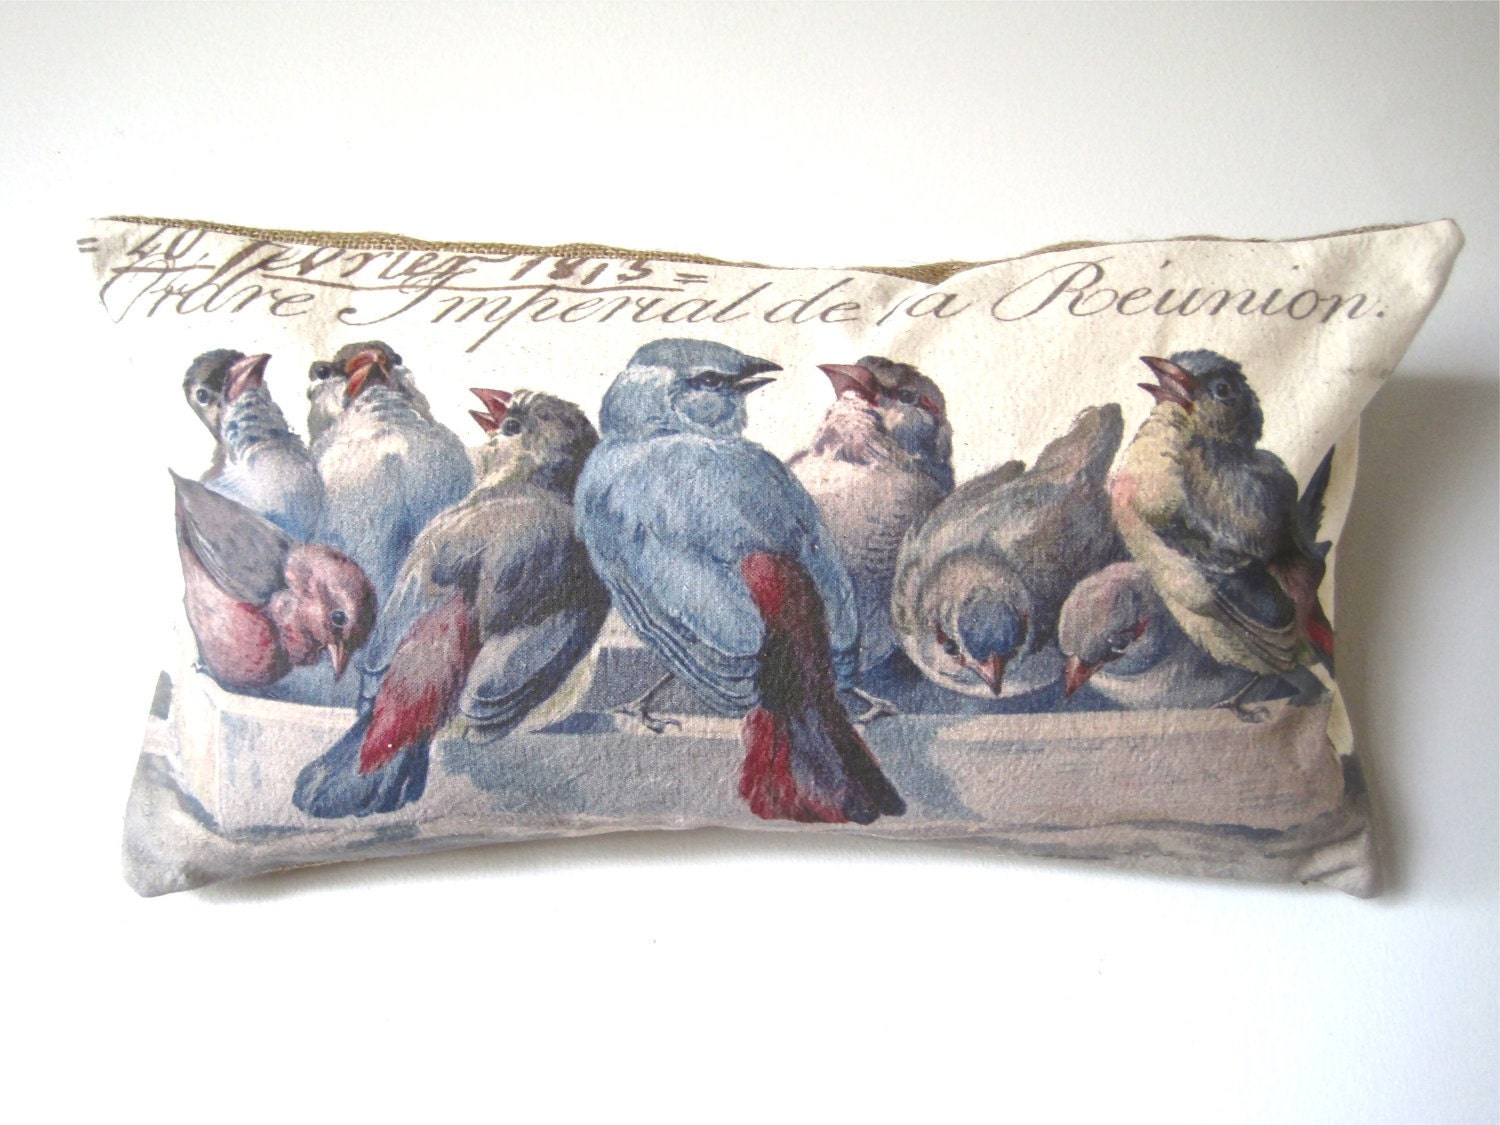 Handmade Handprinted Pillow Cover- 12 x 22- Blue Bird - The Gathering